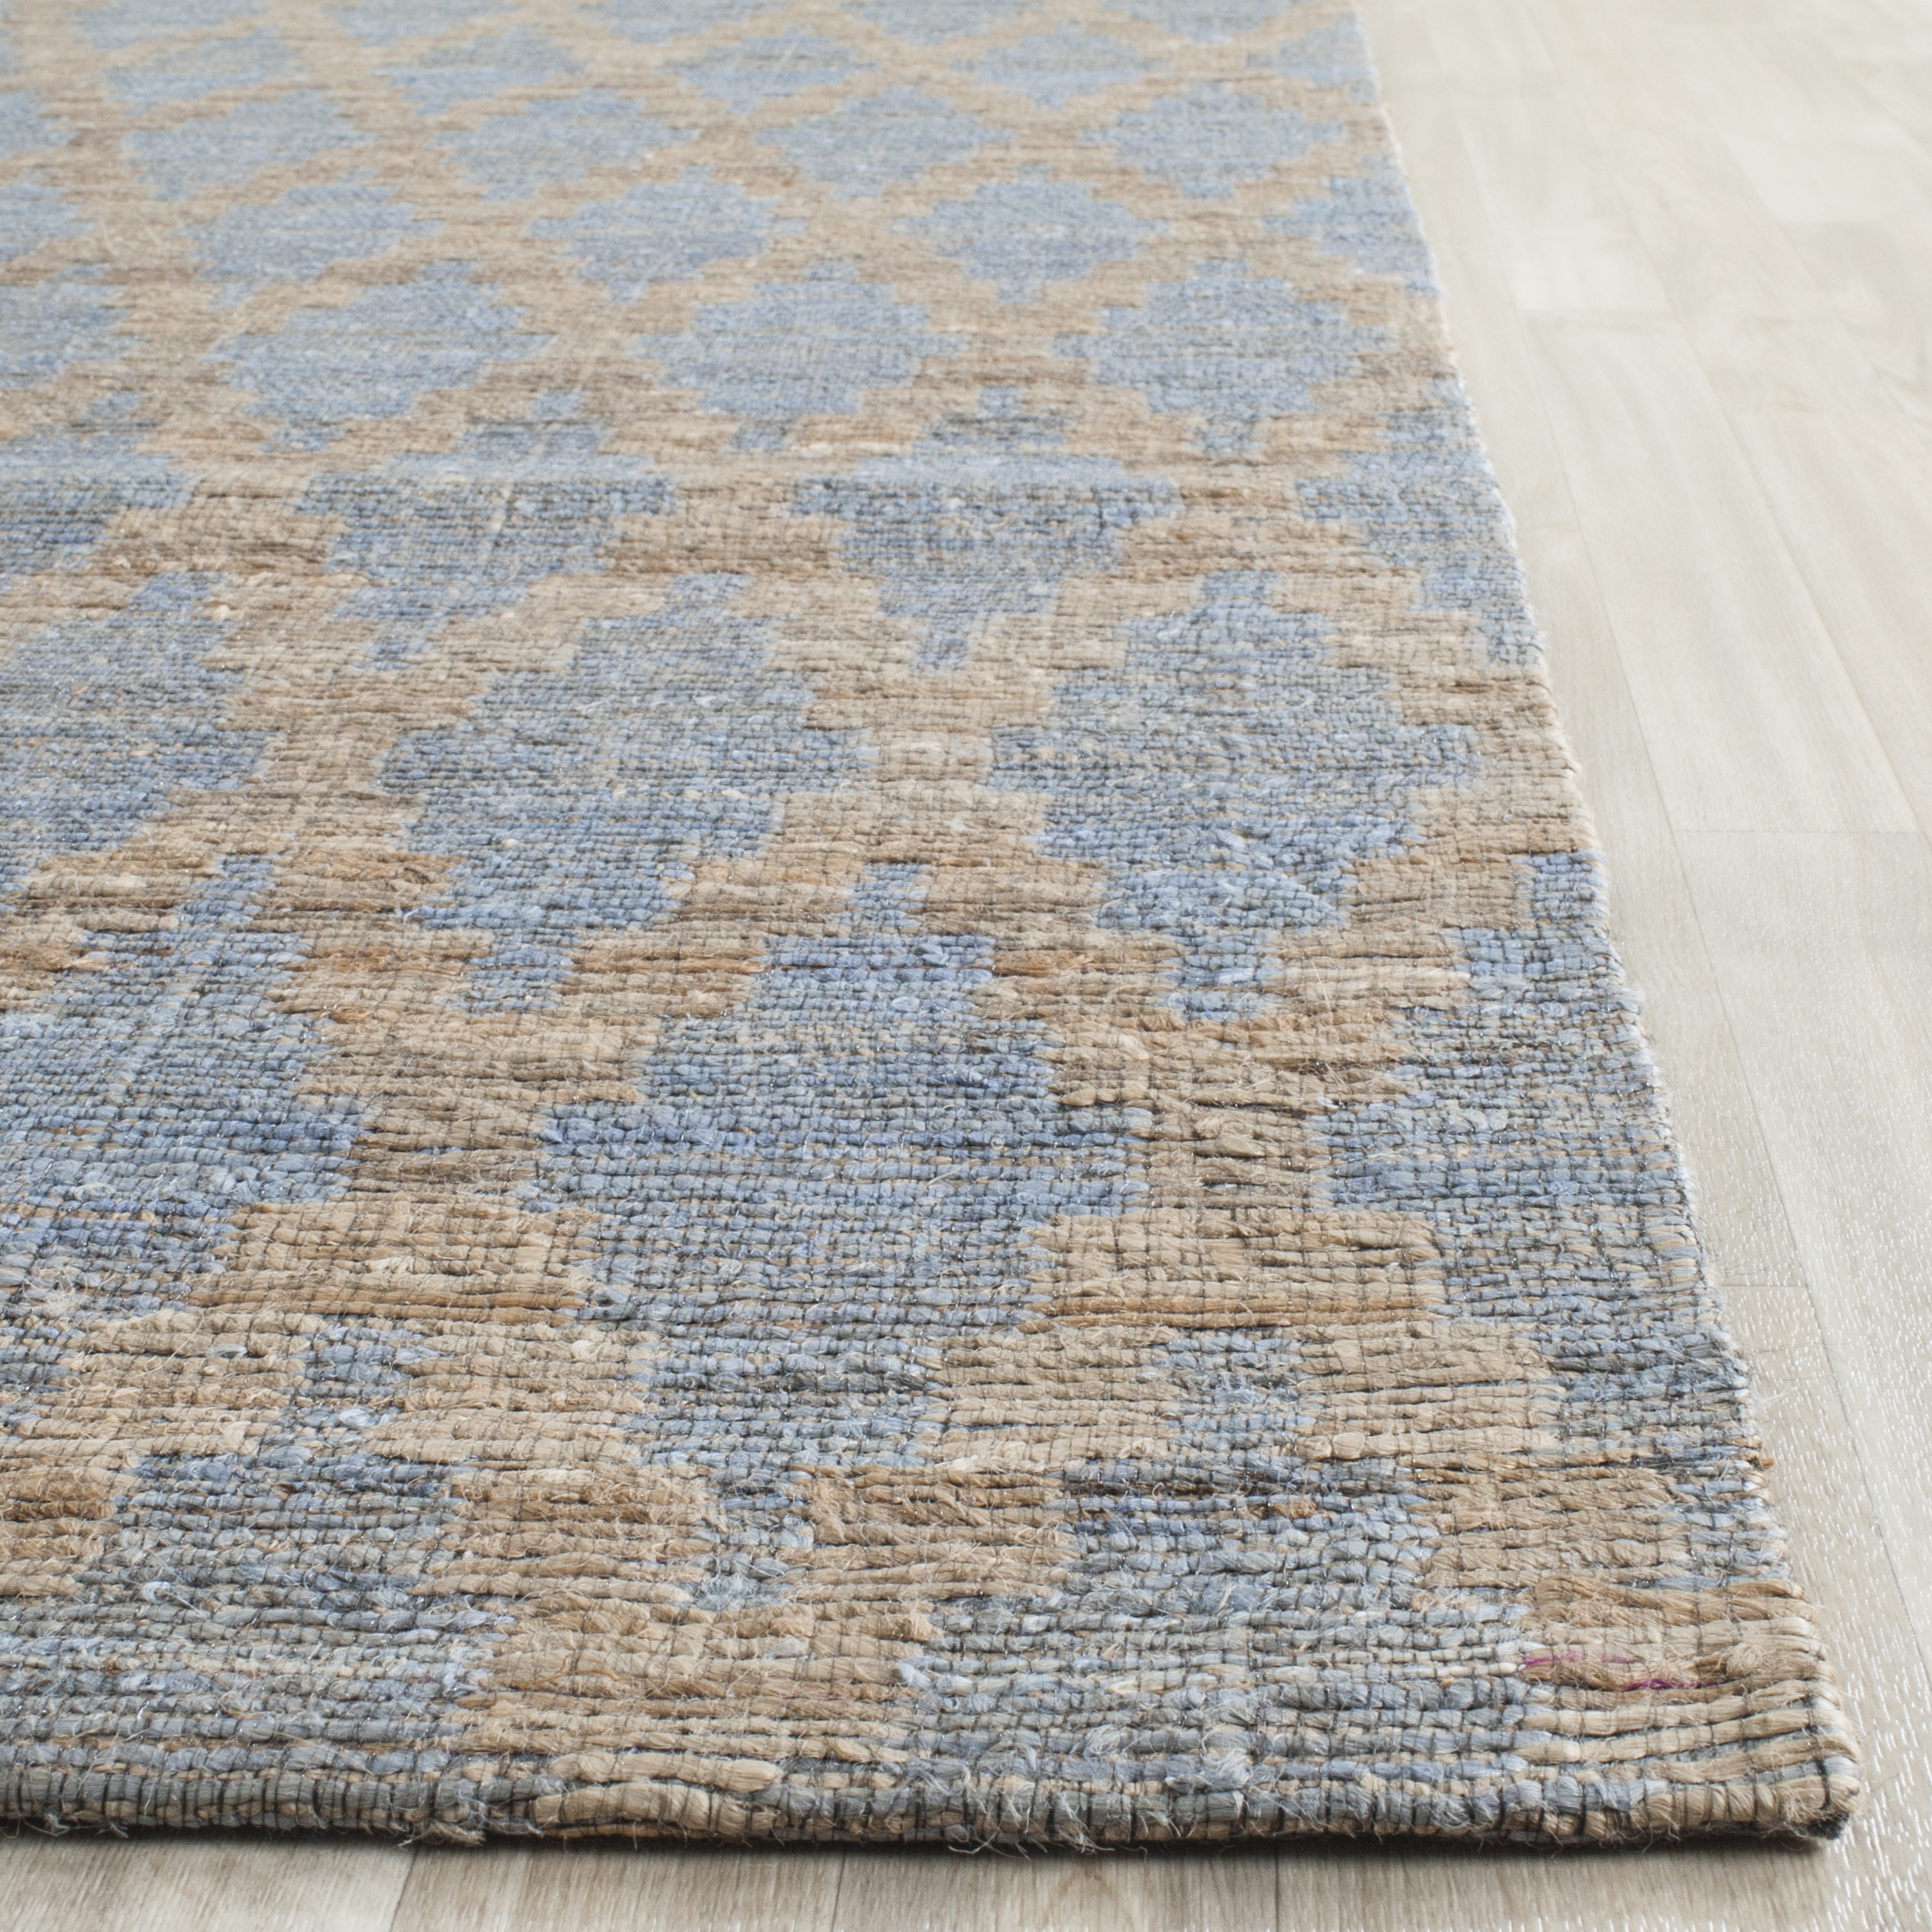 New Blue And Gold Area Rugs Oriental Rug In Cream And Cornflower A Within Light Blue And Cream Rugs (Image 9 of 15)